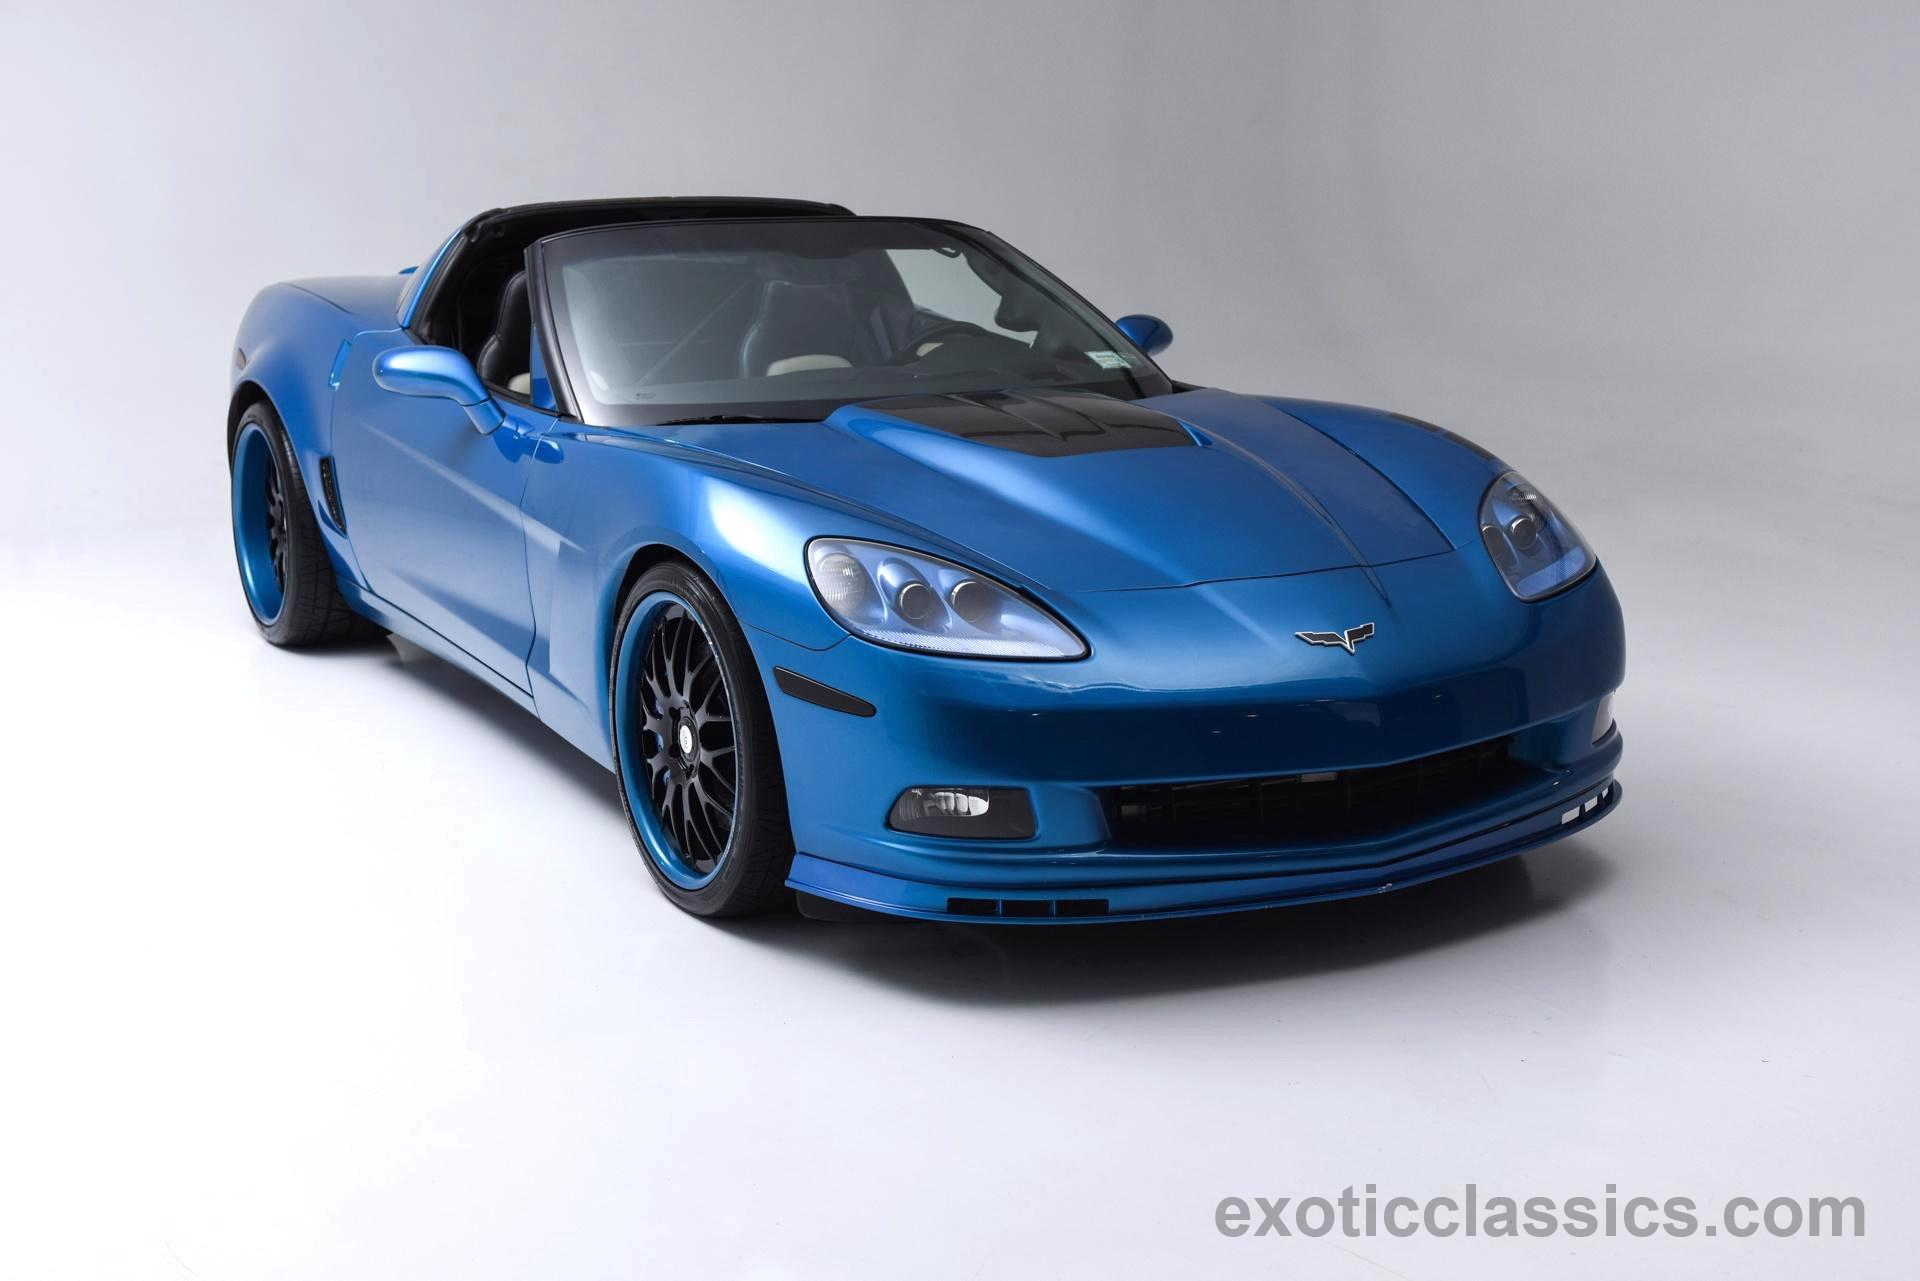 2008 chevrolet corvette exotic classic car dealership. Black Bedroom Furniture Sets. Home Design Ideas